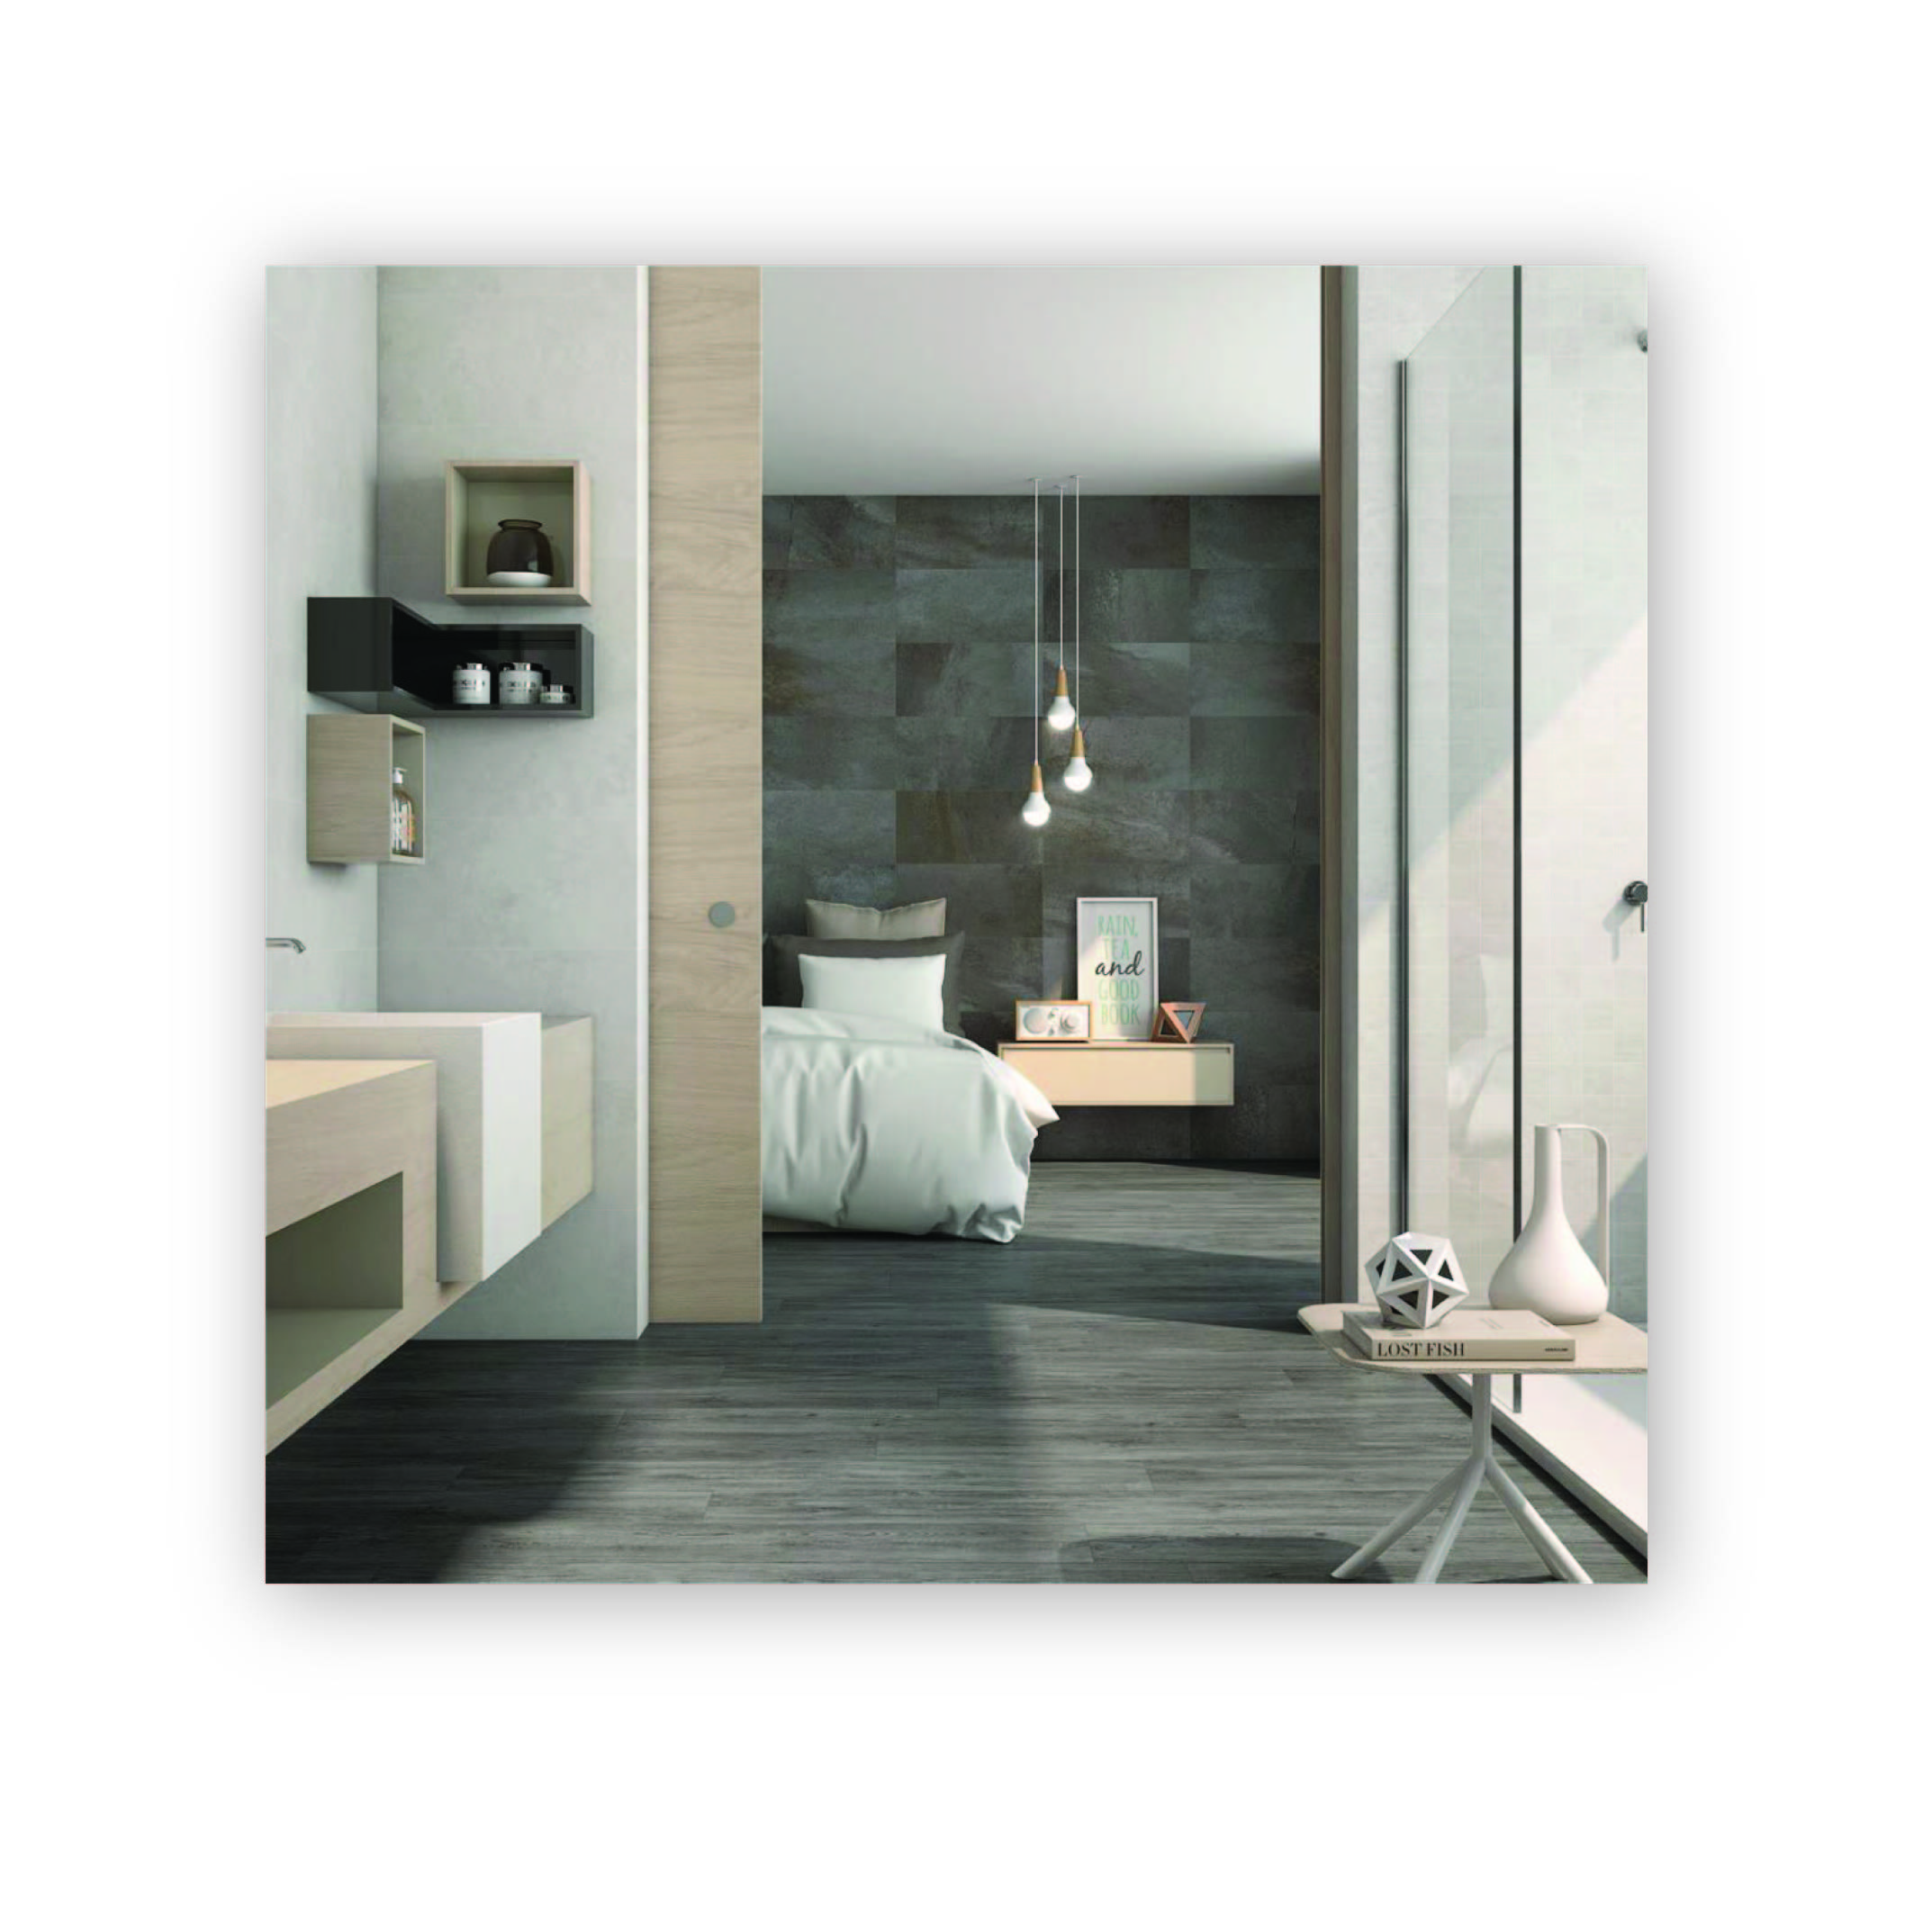 All Natural Stone Stock Material, All Natural Stone Stock Porcelain, Koncept